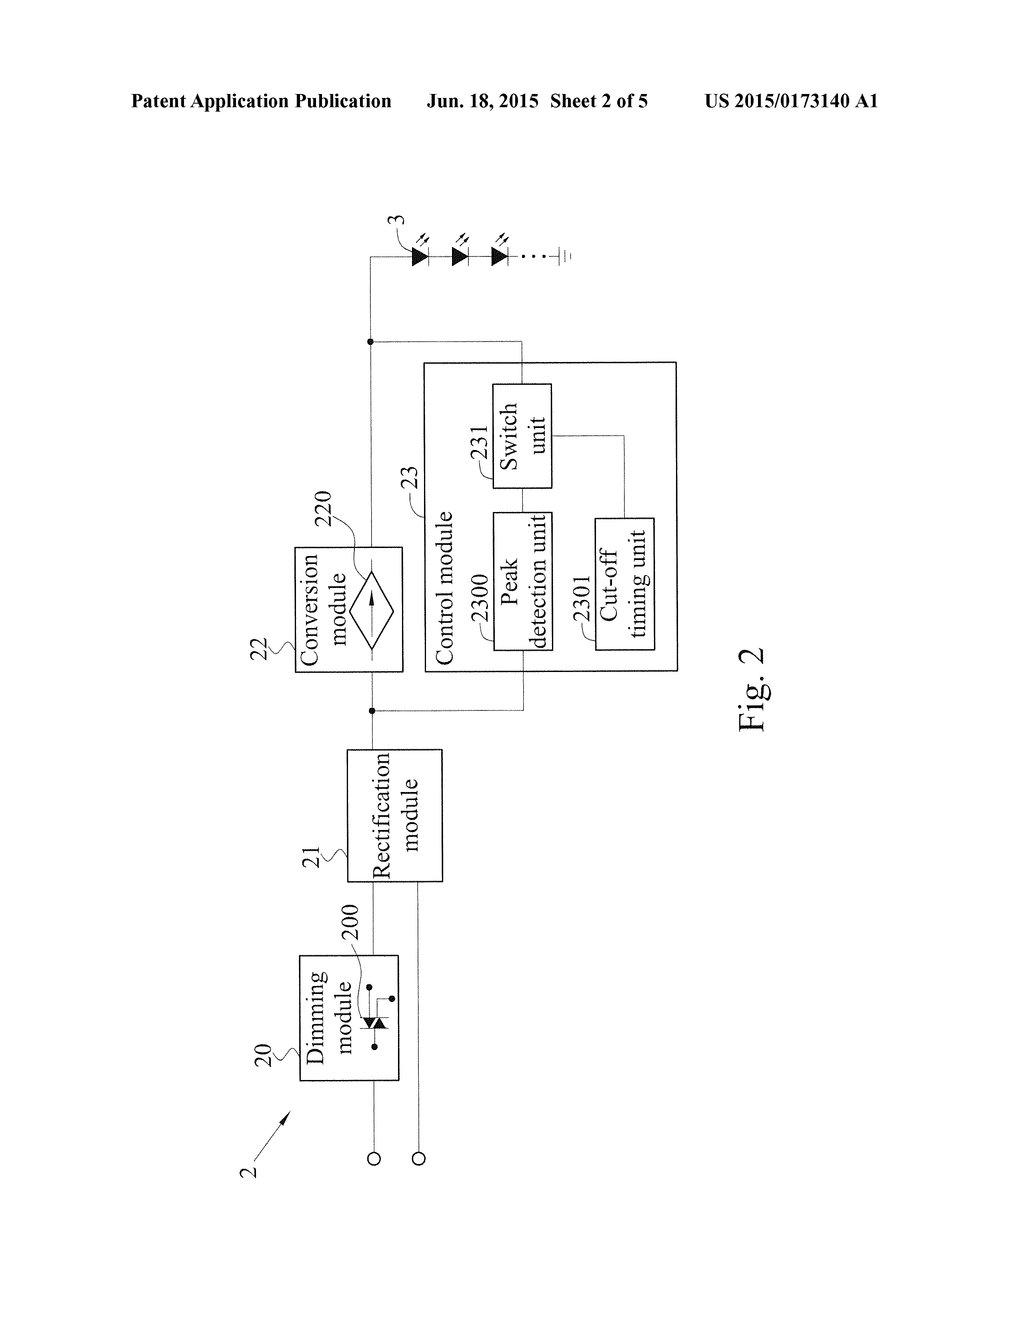 Led Driver Circuit For Supplying Triac Holding Current By Using Controllable Source Diagram Schematic And Image 03